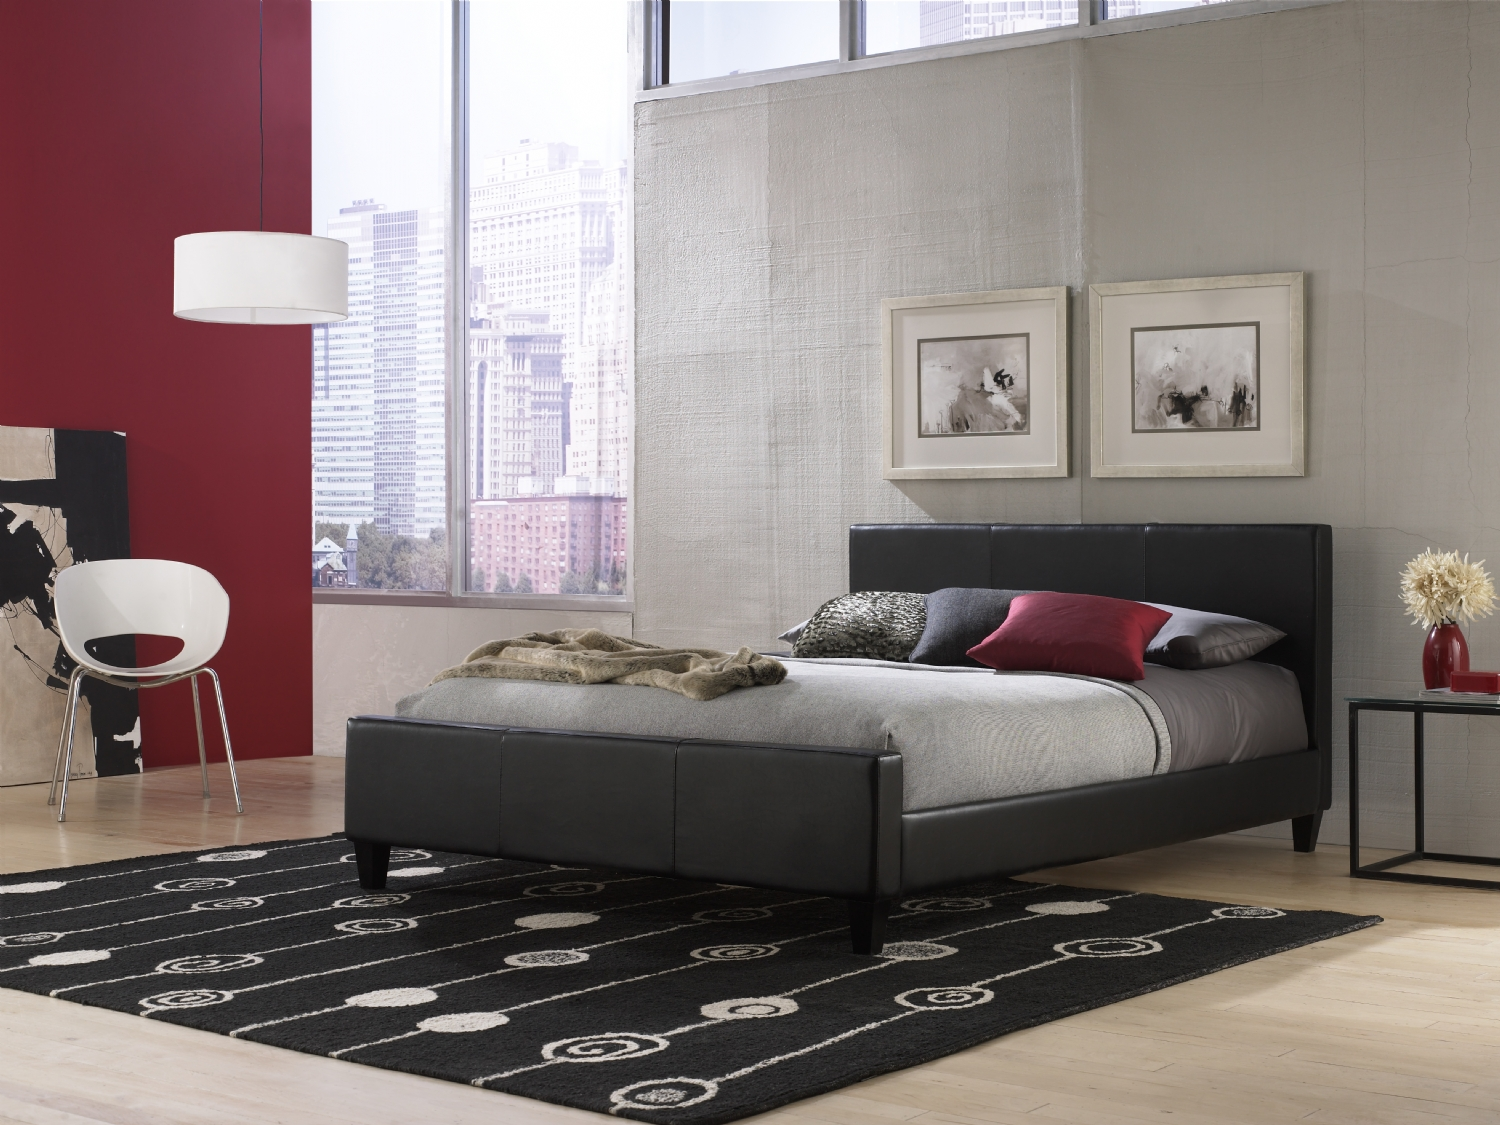 low profile platform bed frame in bedroom decorating ideas with silver bedding and black modern rug